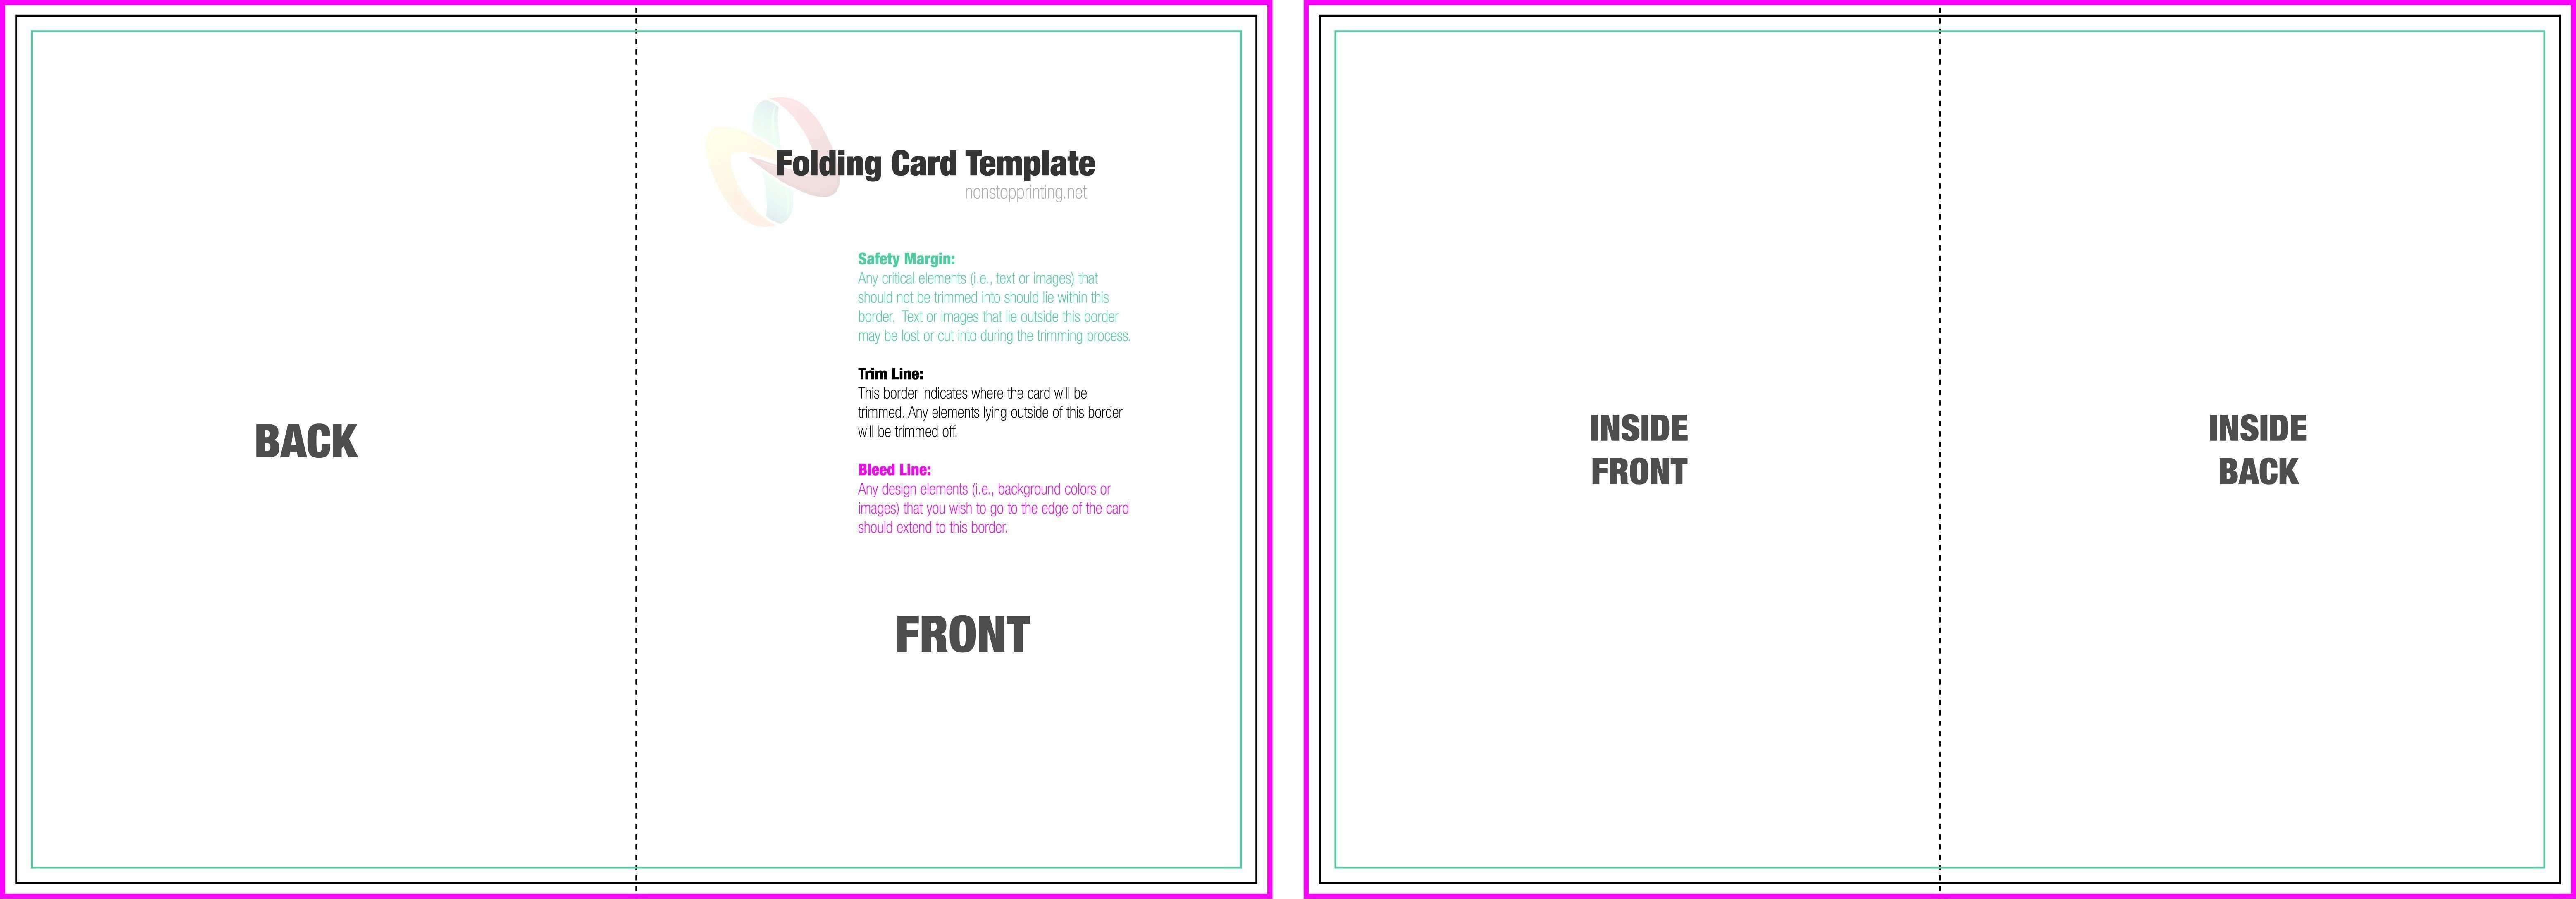 85 Free 5 X 7 Greeting Card Template Word in Photoshop for 5 X 7 Greeting Card Template Word